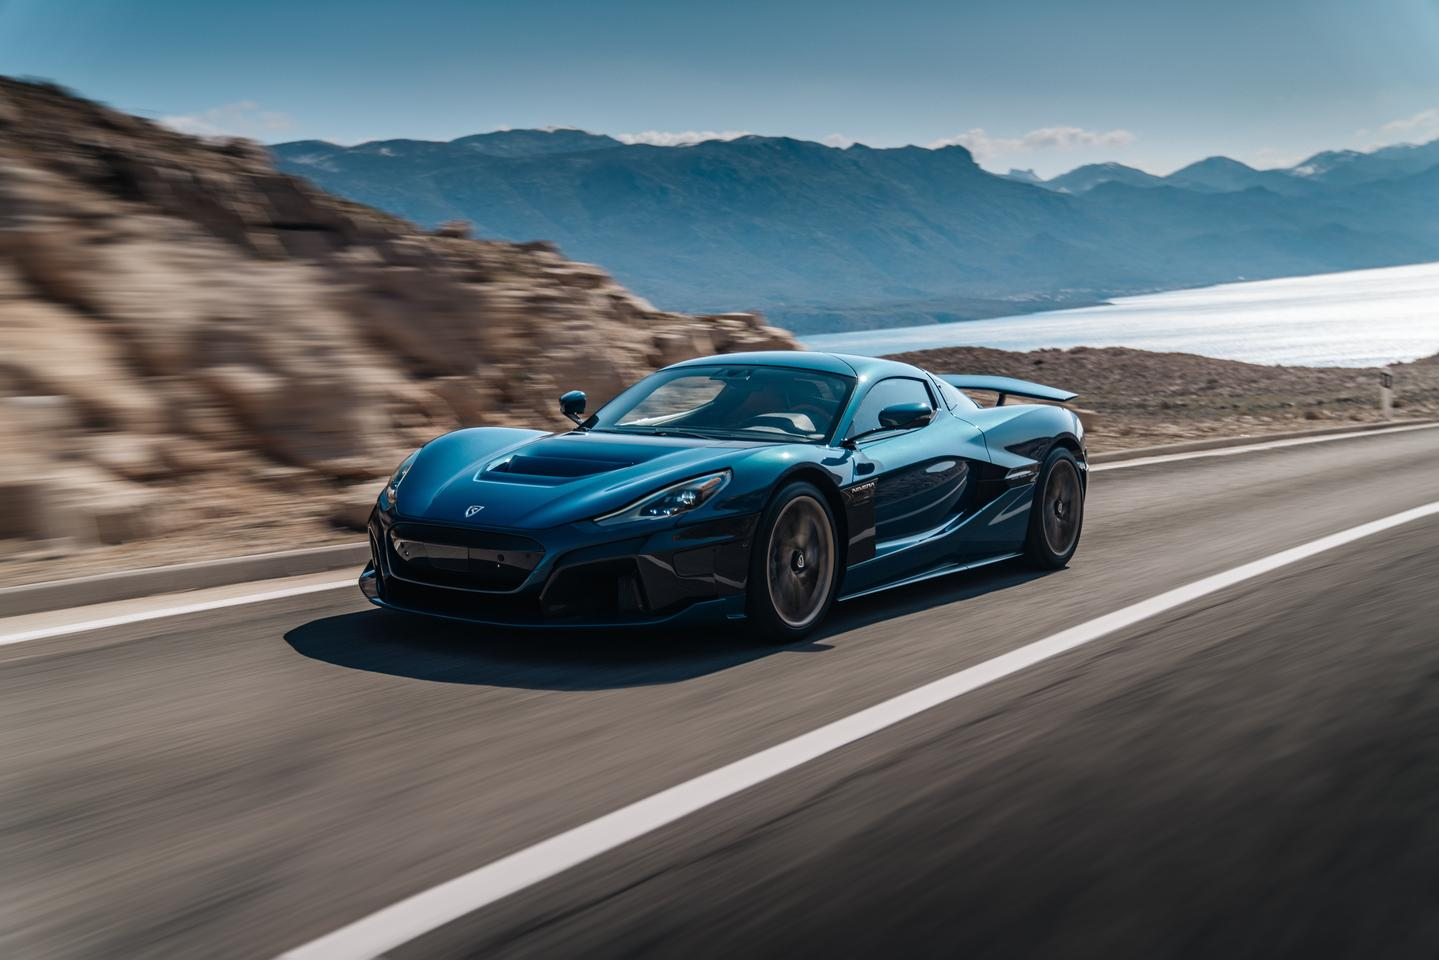 Rimac says the Nevera has a 48/52 front/rear weight split